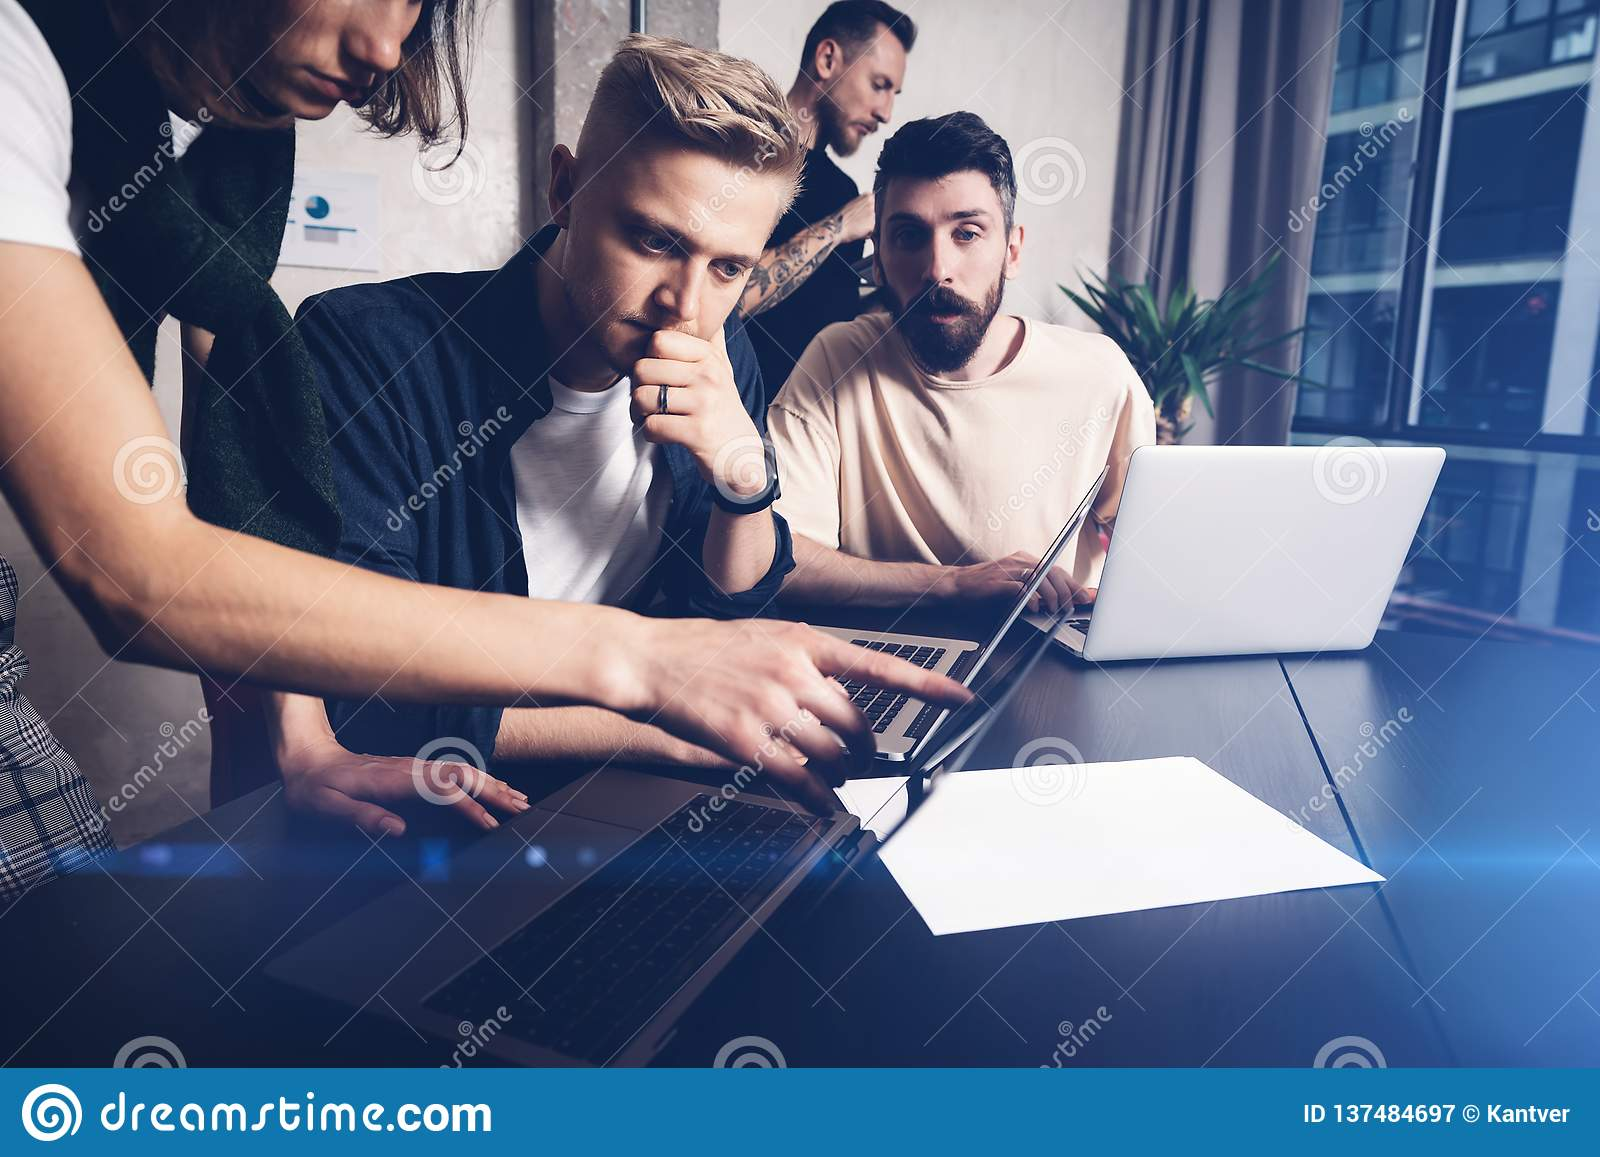 Coworkers team at work. Group of young business people in trendy casual wear working together in creative office